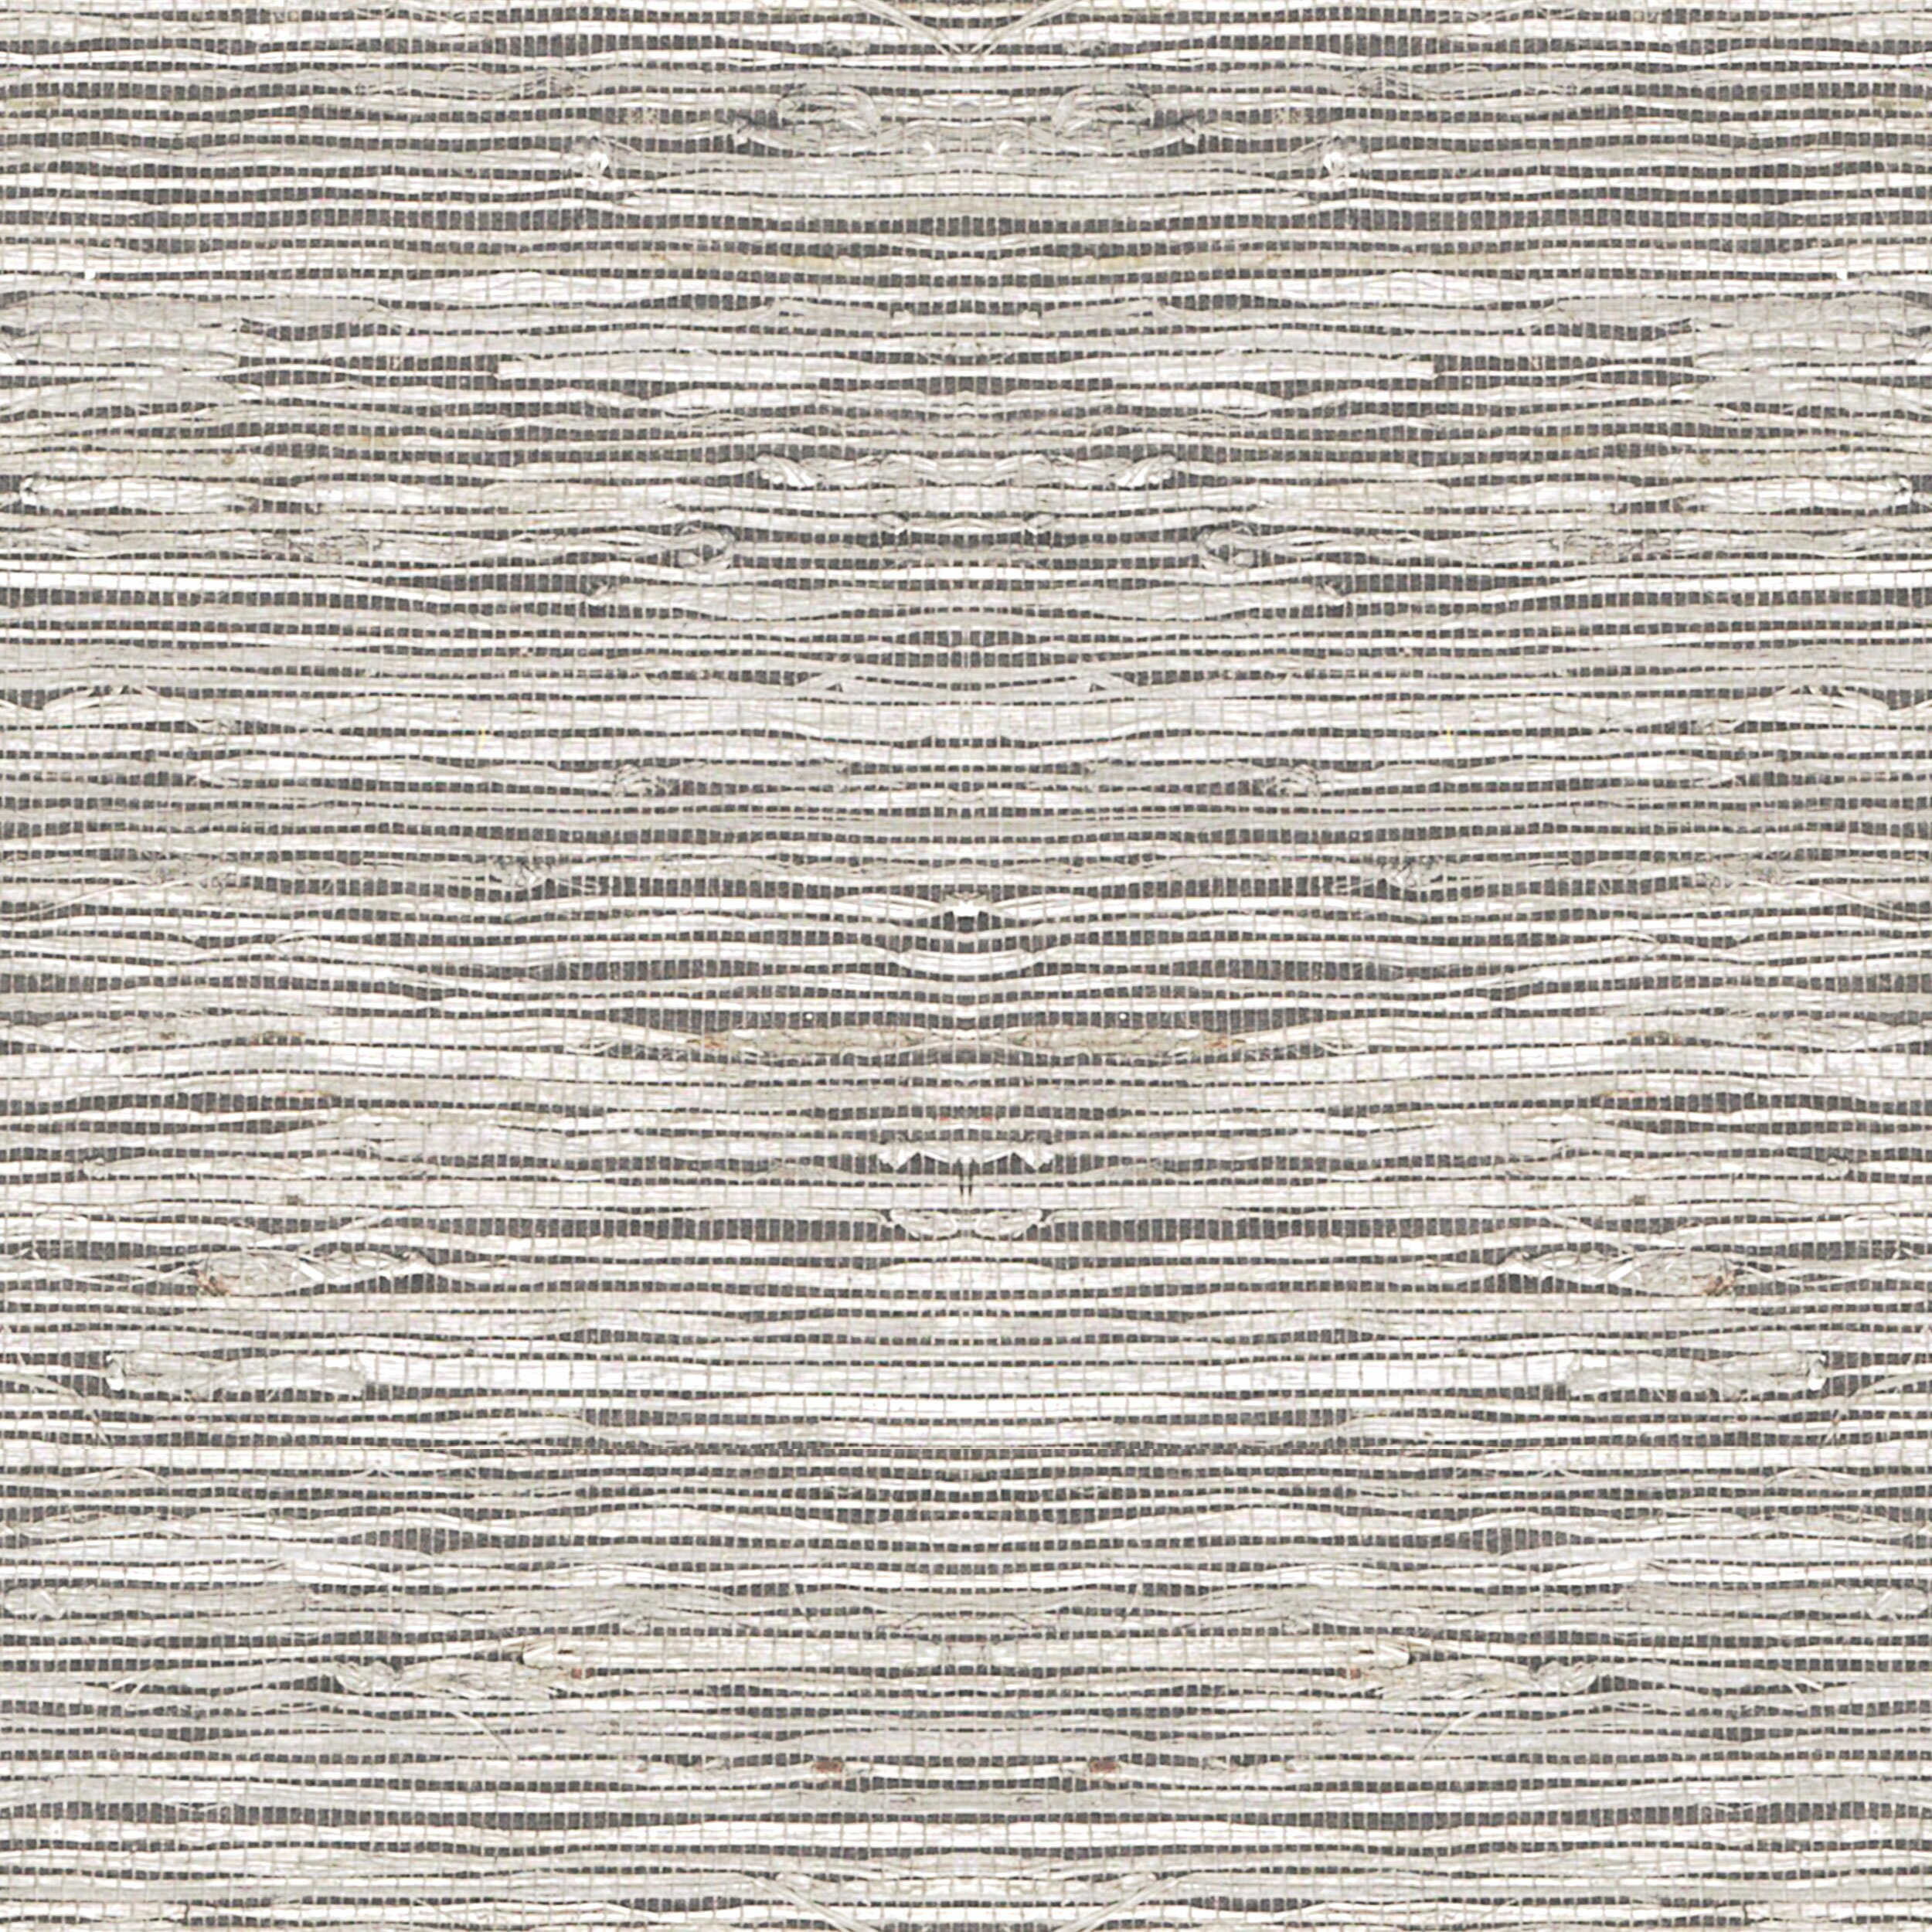 Grasscloth Wallpaper Peel And Stick: Swag Paper Grasscloth Abstract Panel Wallpaper & Reviews